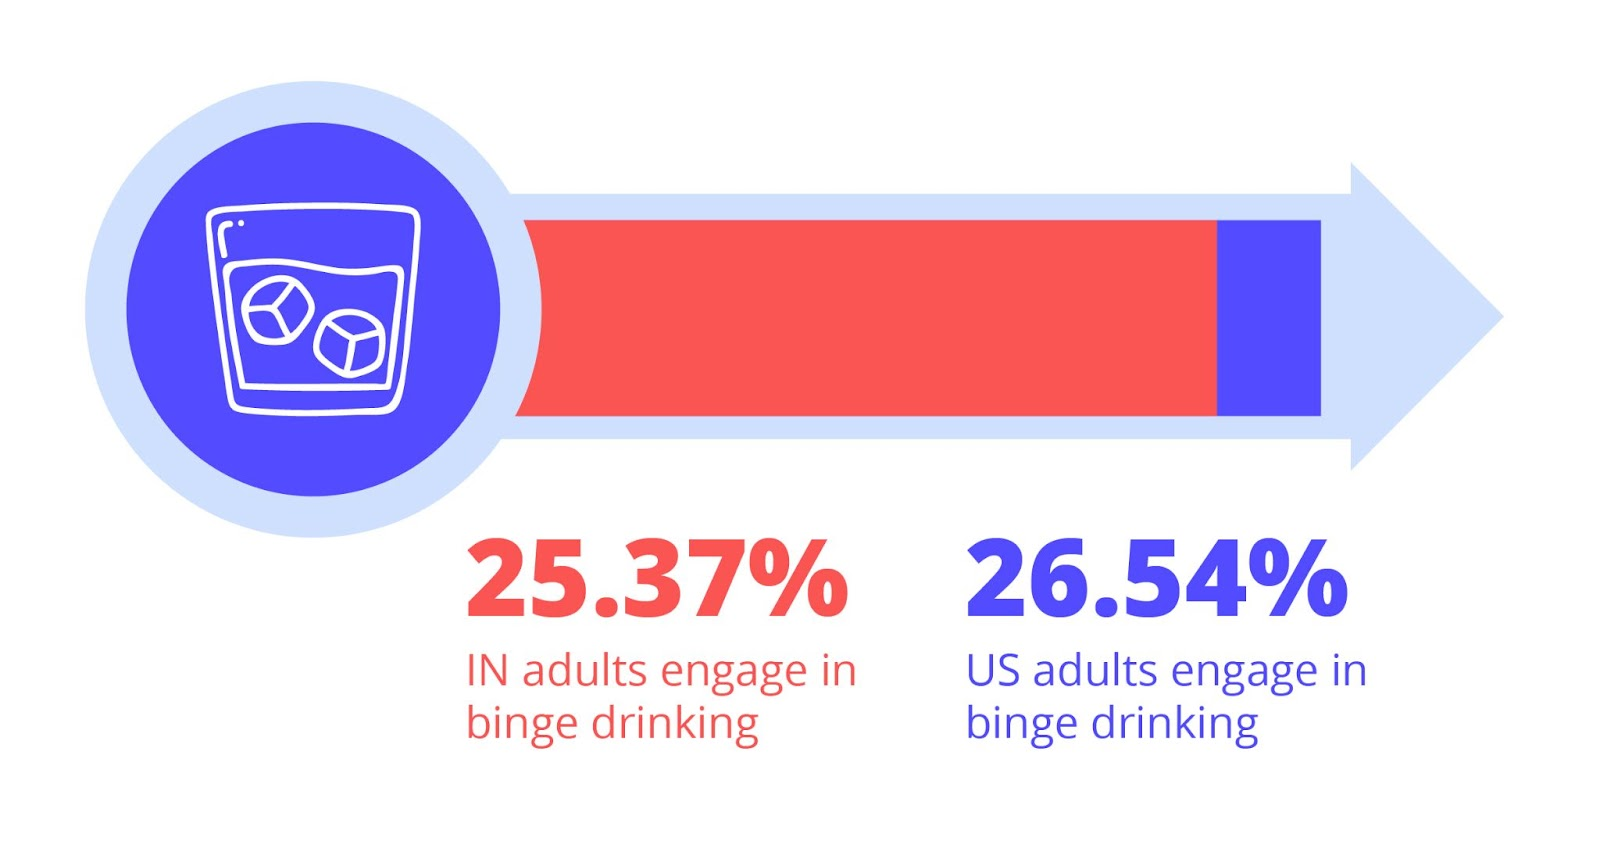 25.37 indiana adults engage in binge drinking. 26.54 american adults engage in binge drinking.